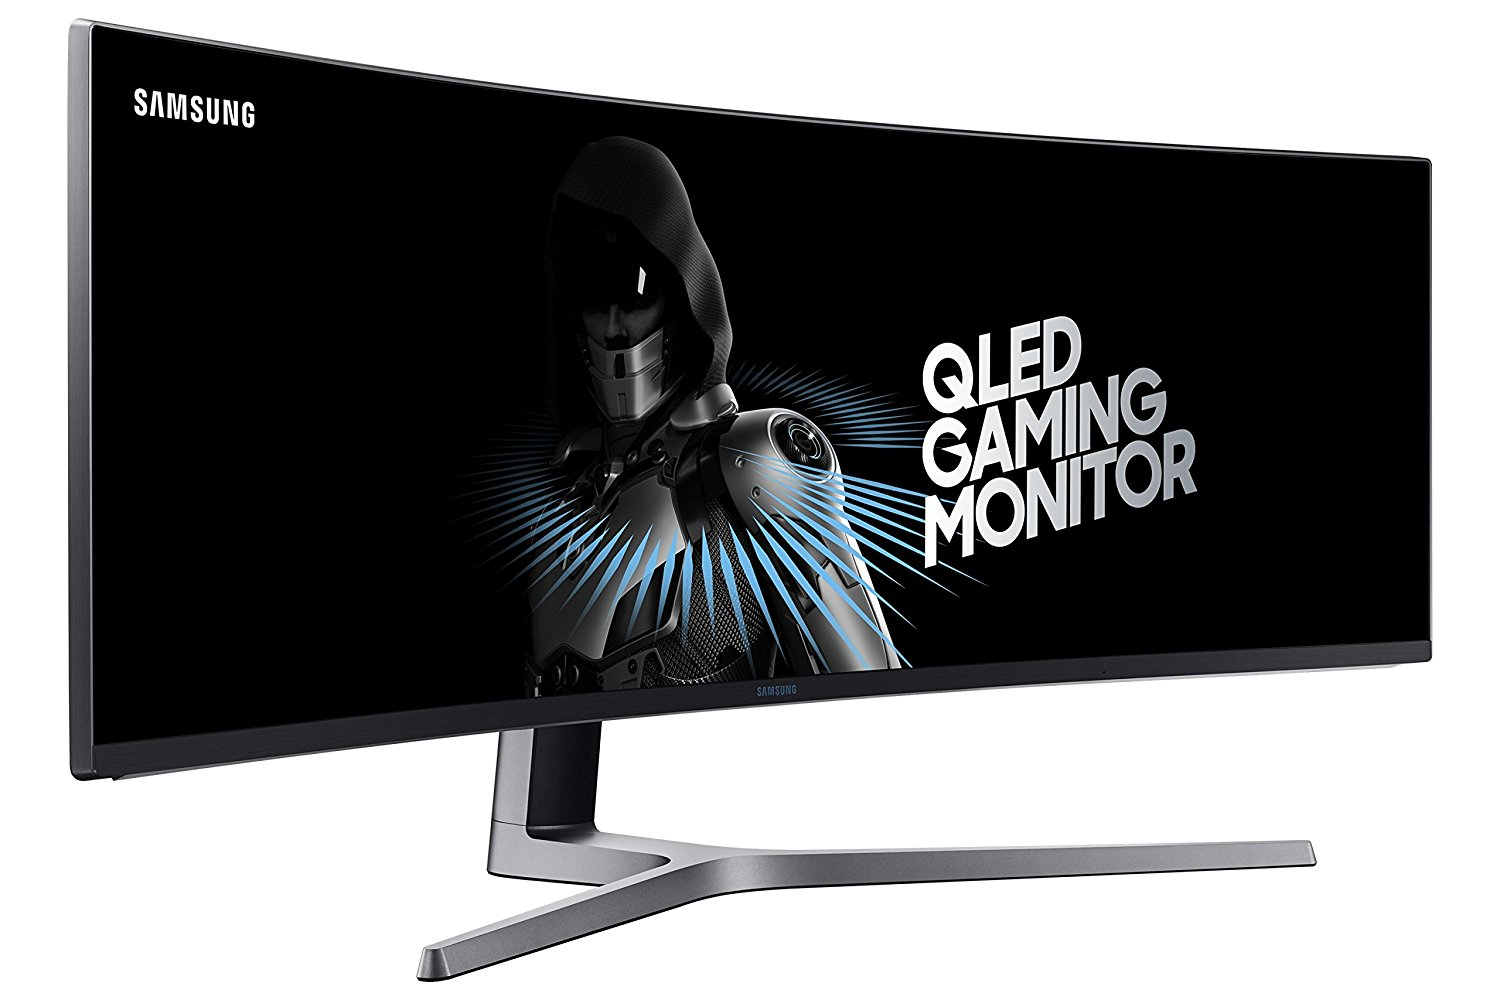 Samsung CHG90 Series Curved 49-inch Gaming Monitor